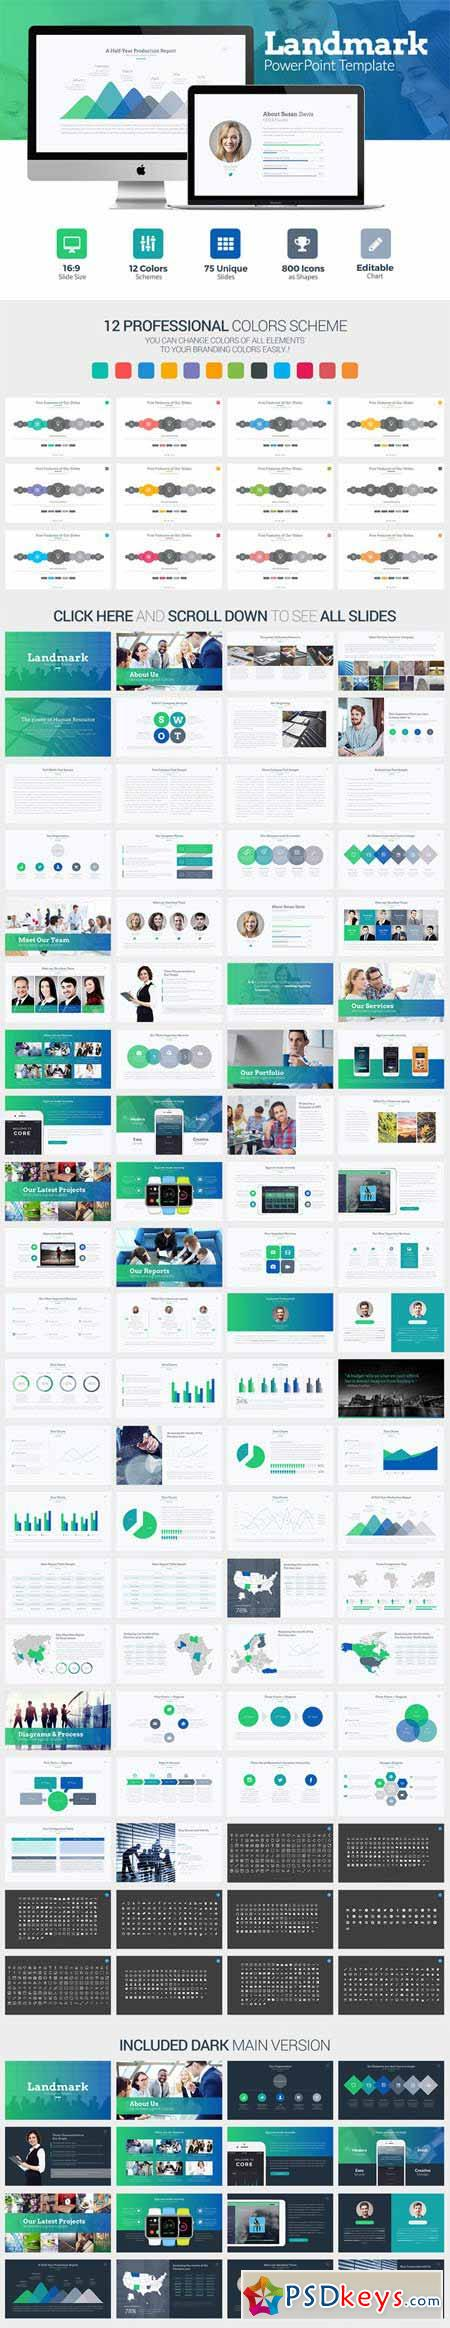 Landmark Powerpoint Template 369142 Free Download Photoshop Vector